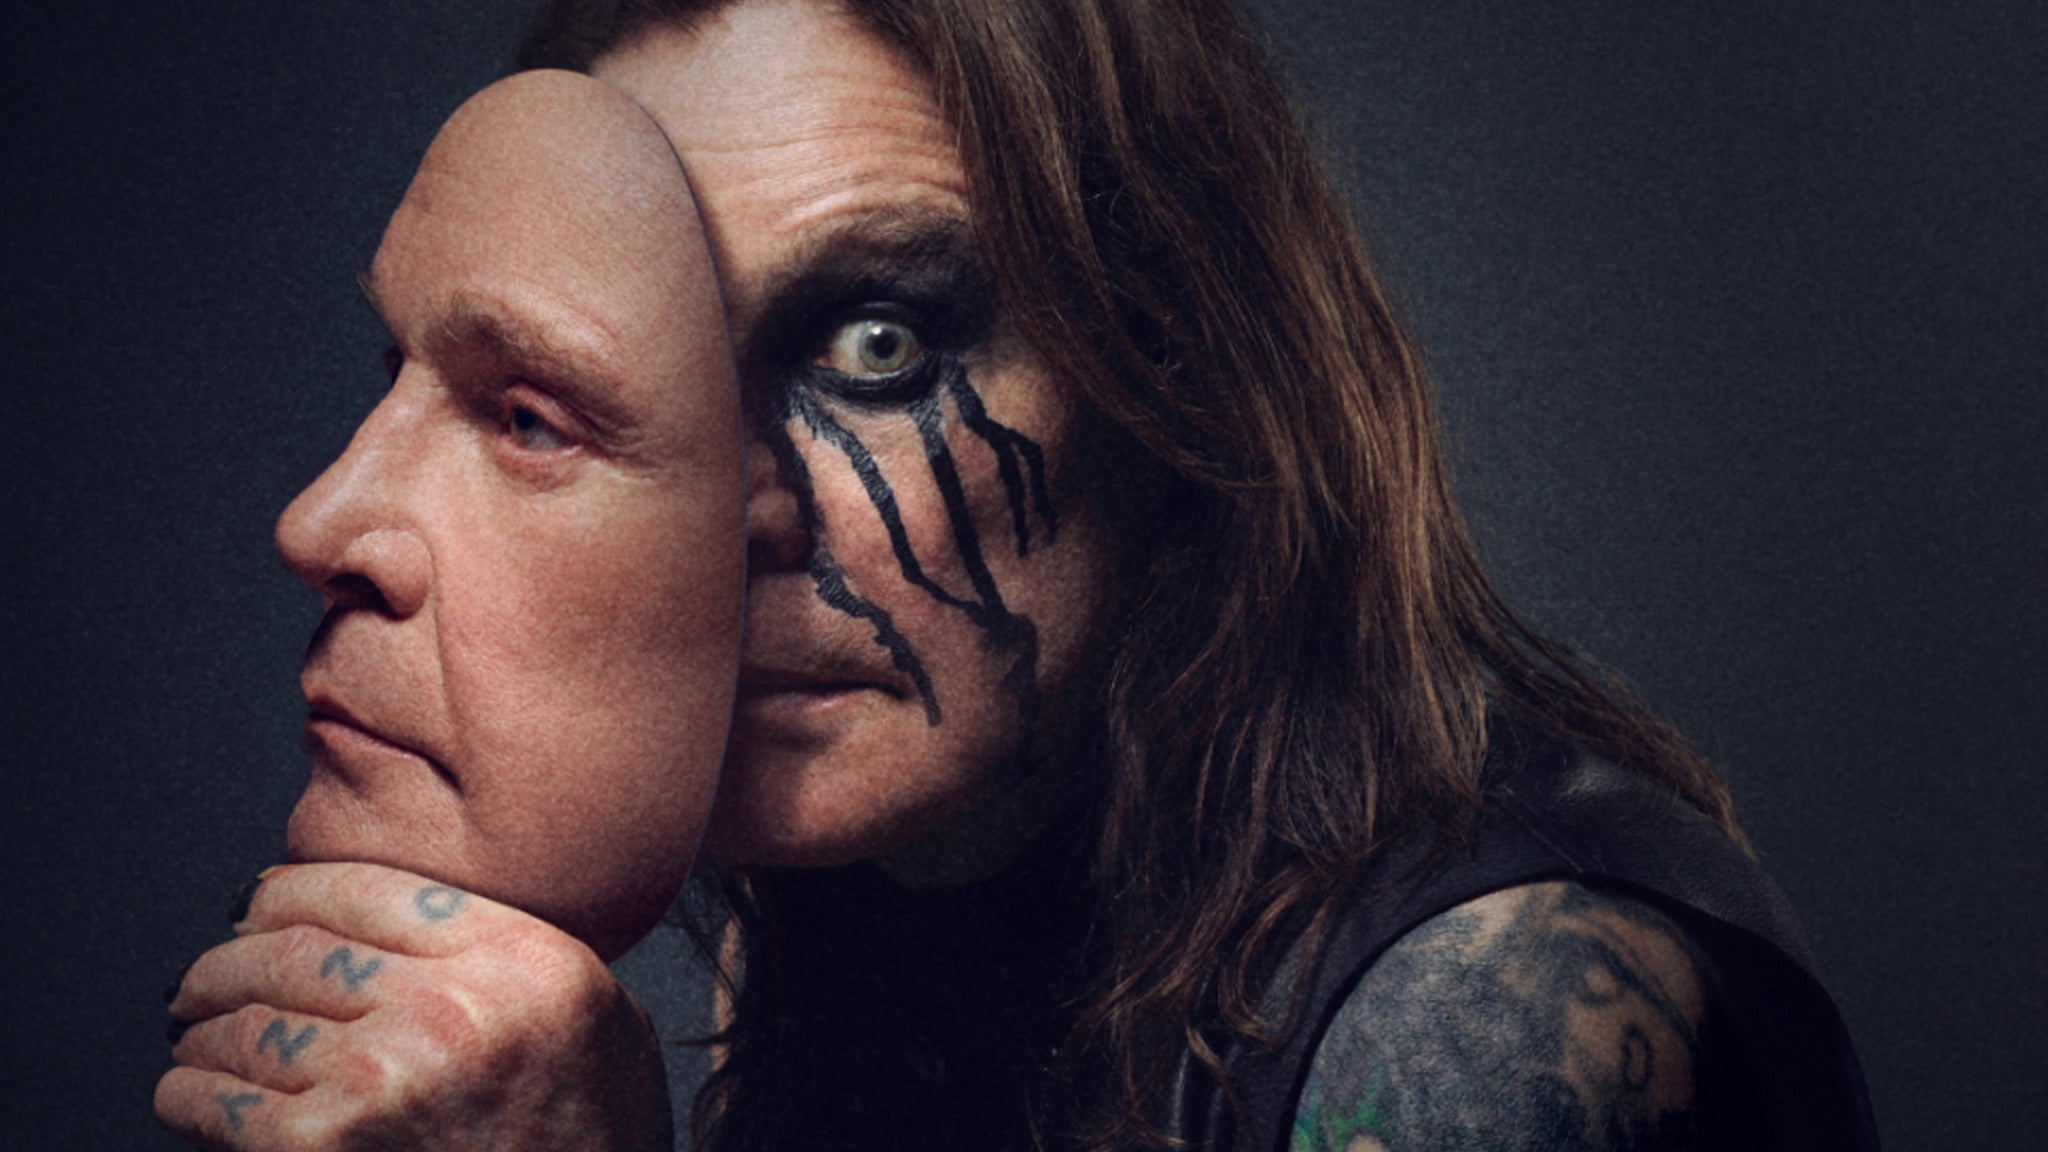 Ozzy Osbourne - Meet & Greet Packages at Hollywood Bowl